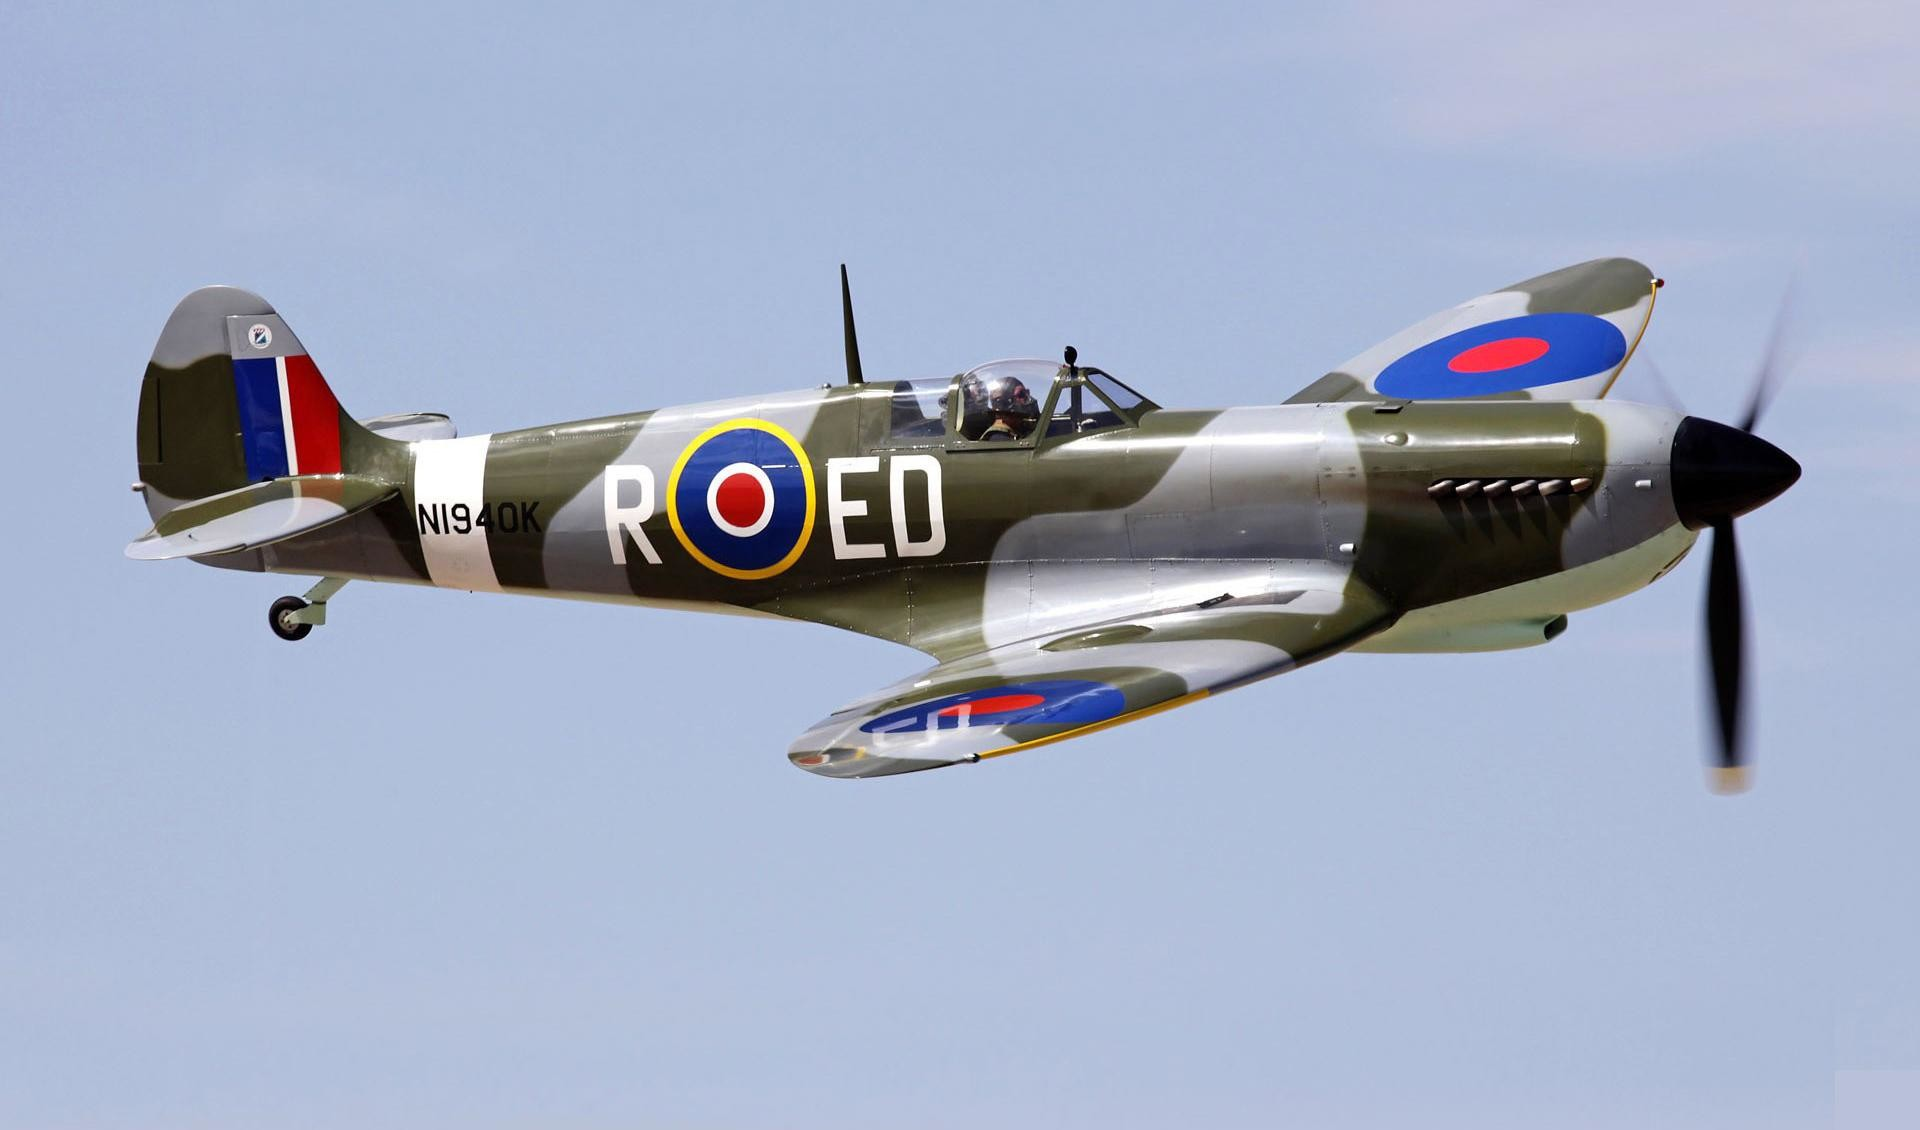 1920x1130 Supermarine Spitfire high quality wallpapers